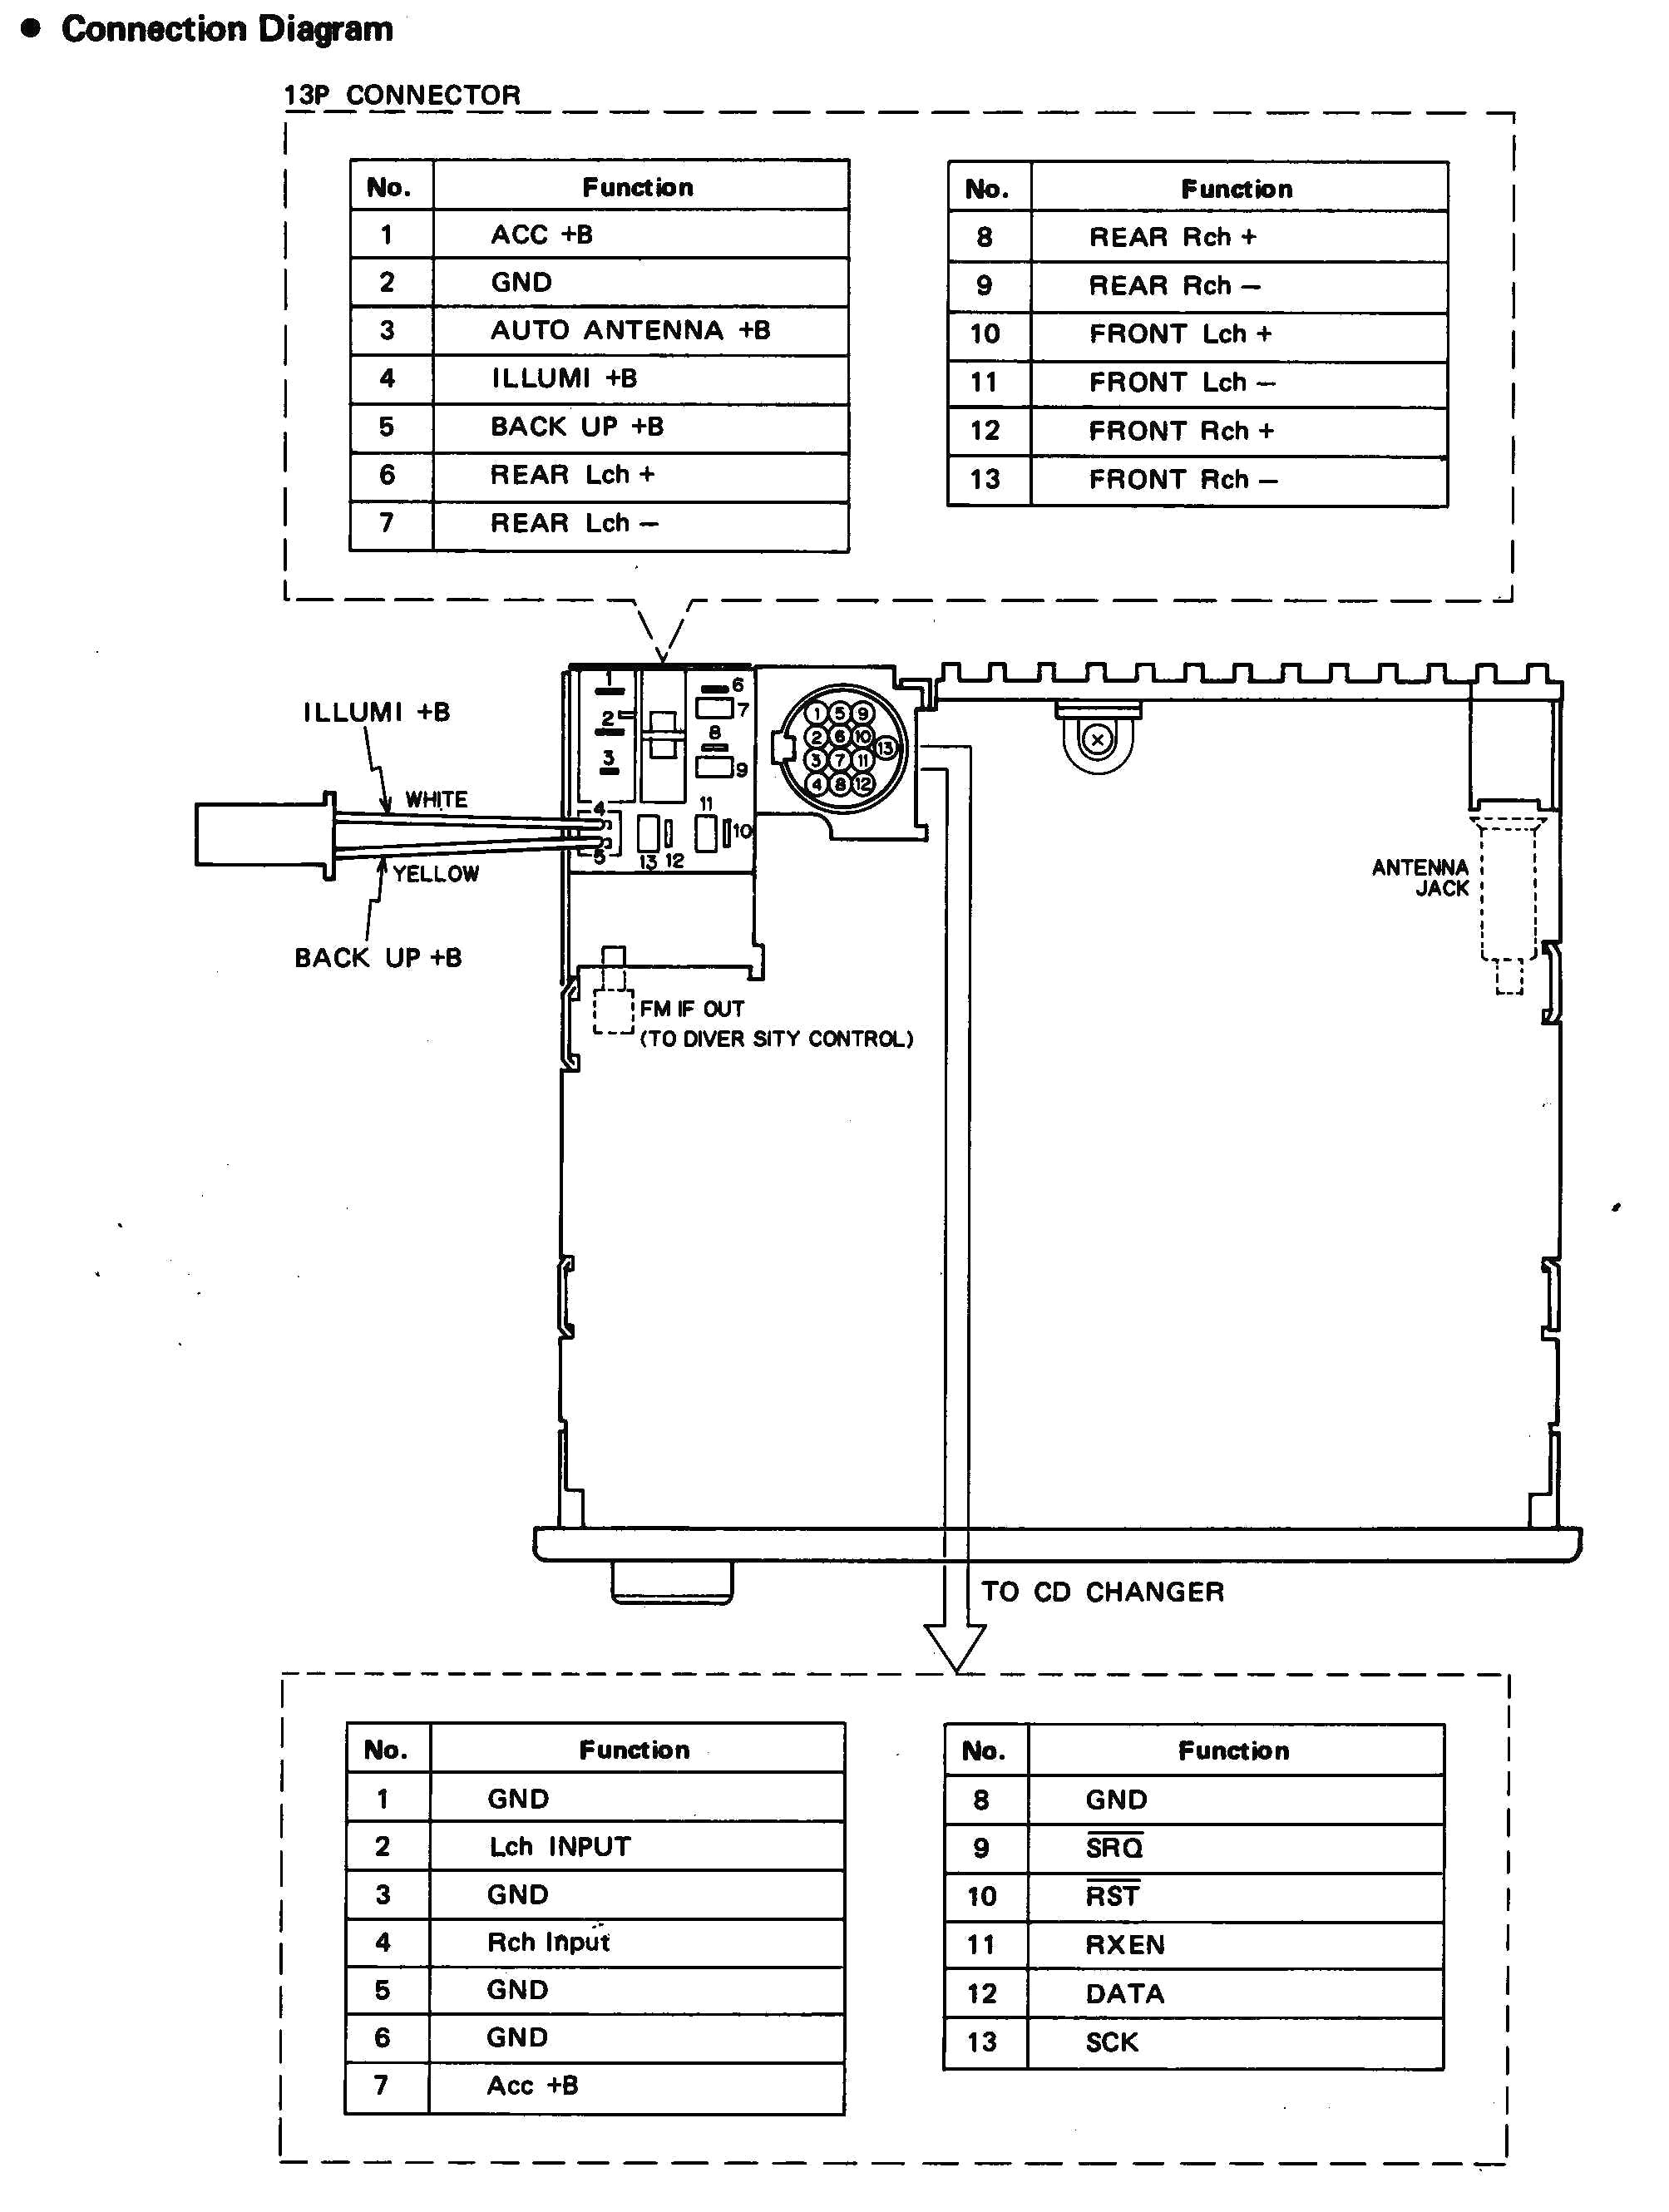 Wiring Diagram Car Audio Factory Car Stereo Wiring Diagrams Wiring Diagram Of Wiring Diagram Car Audio